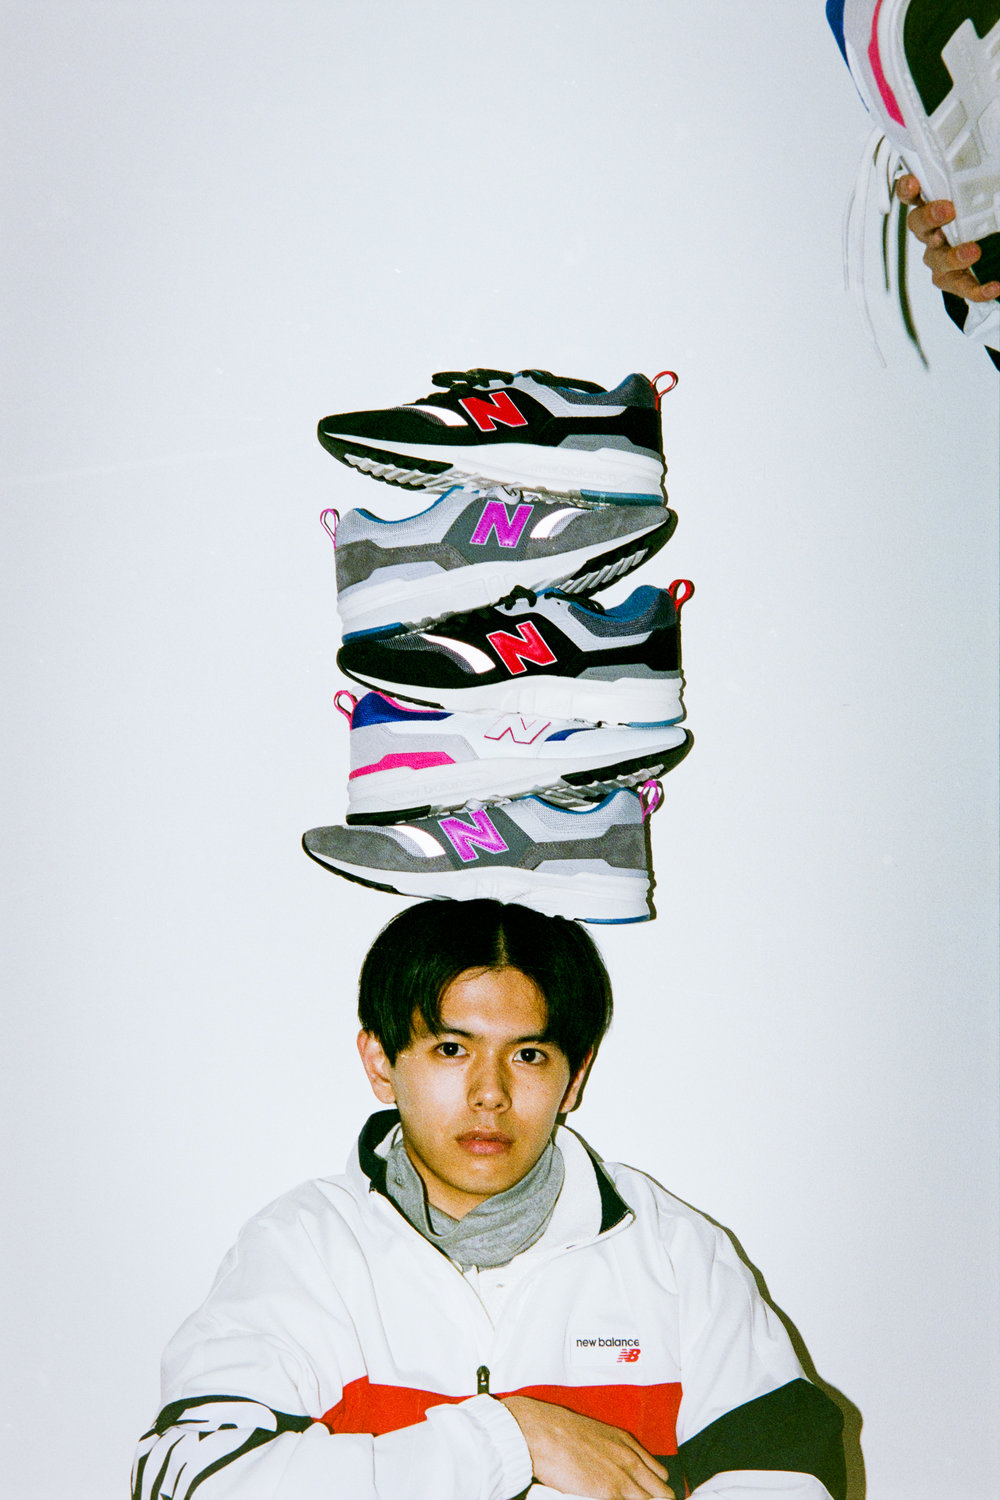 NEW BALANCE for MEN'S NON-NO 3月号